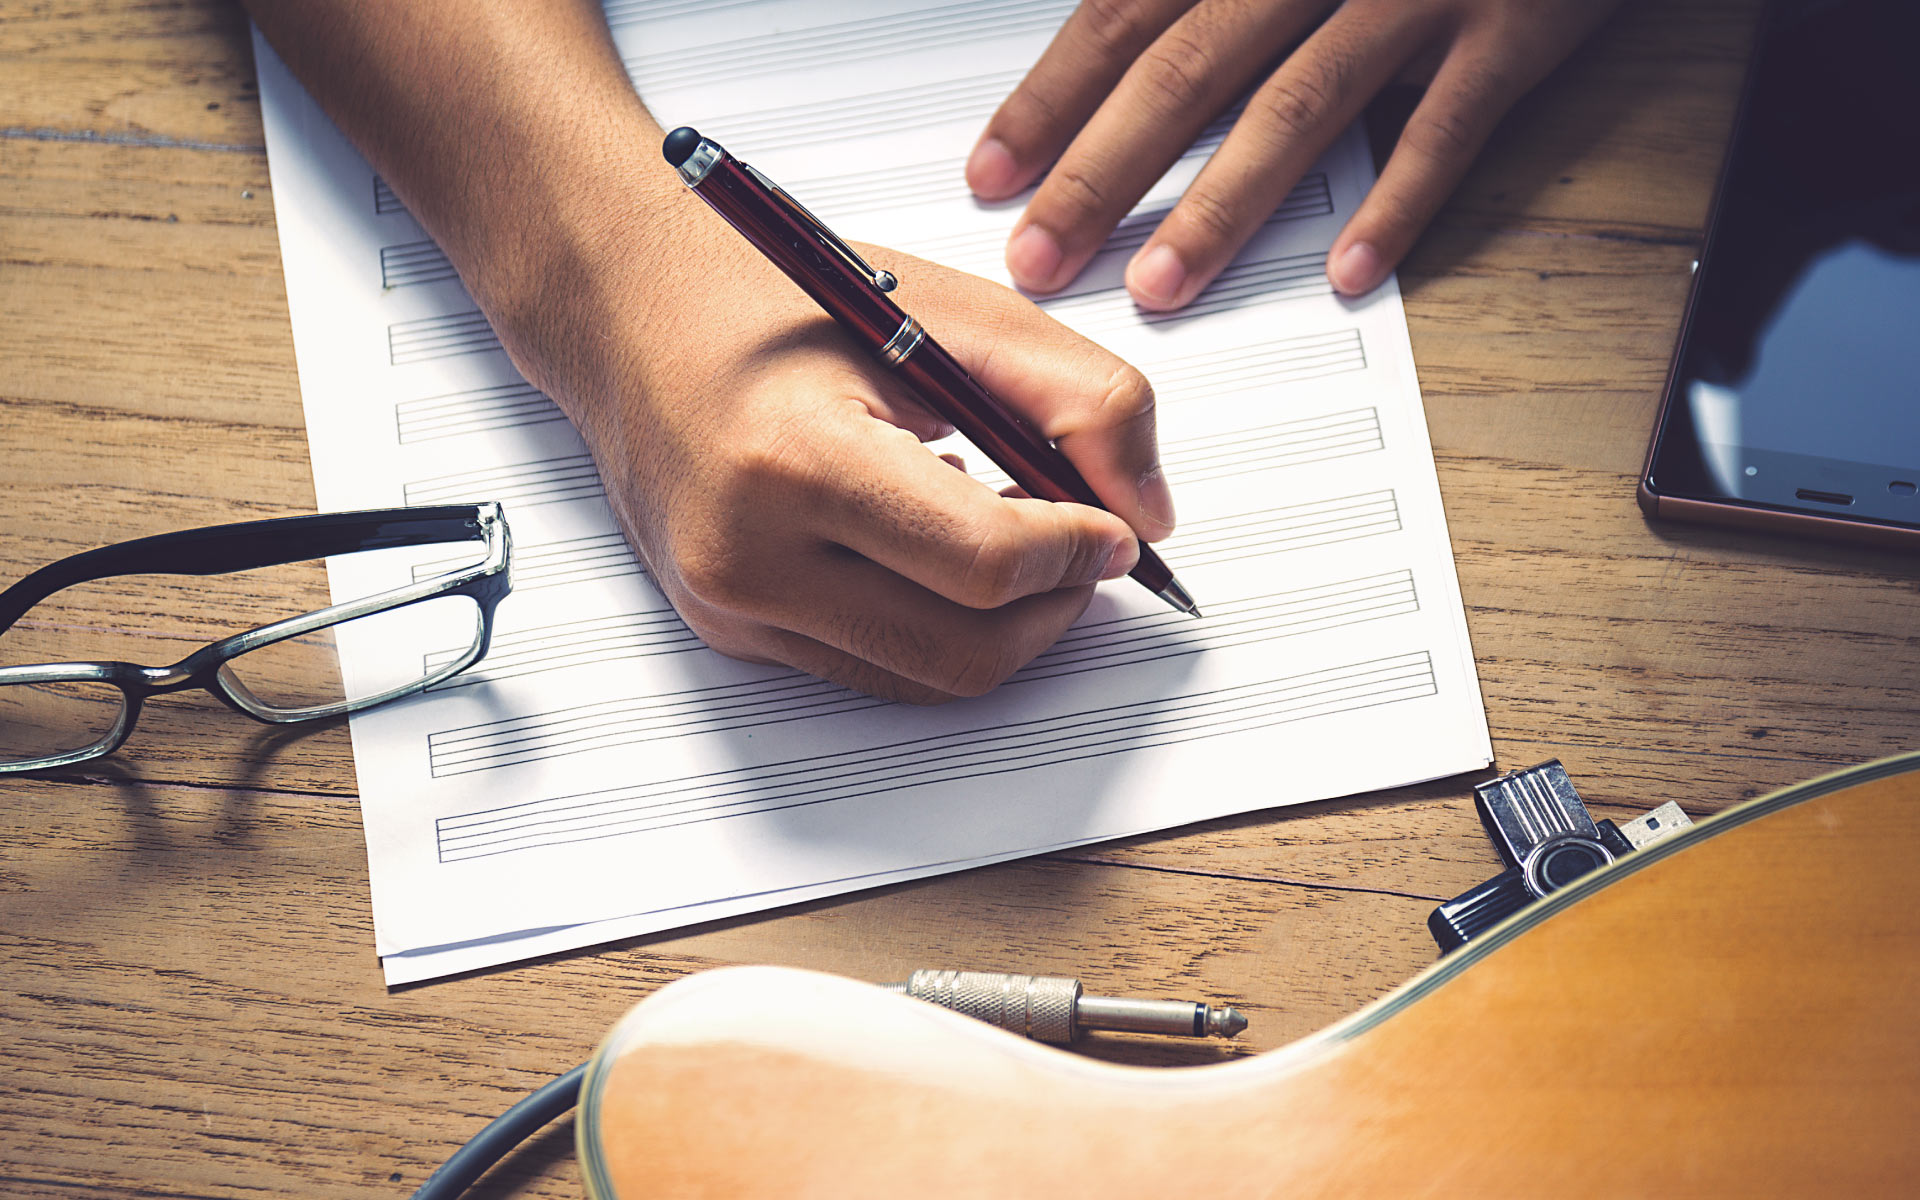 A musician writing on a piece of staff paper, with their glasses, guitar, and smart phone on the table.